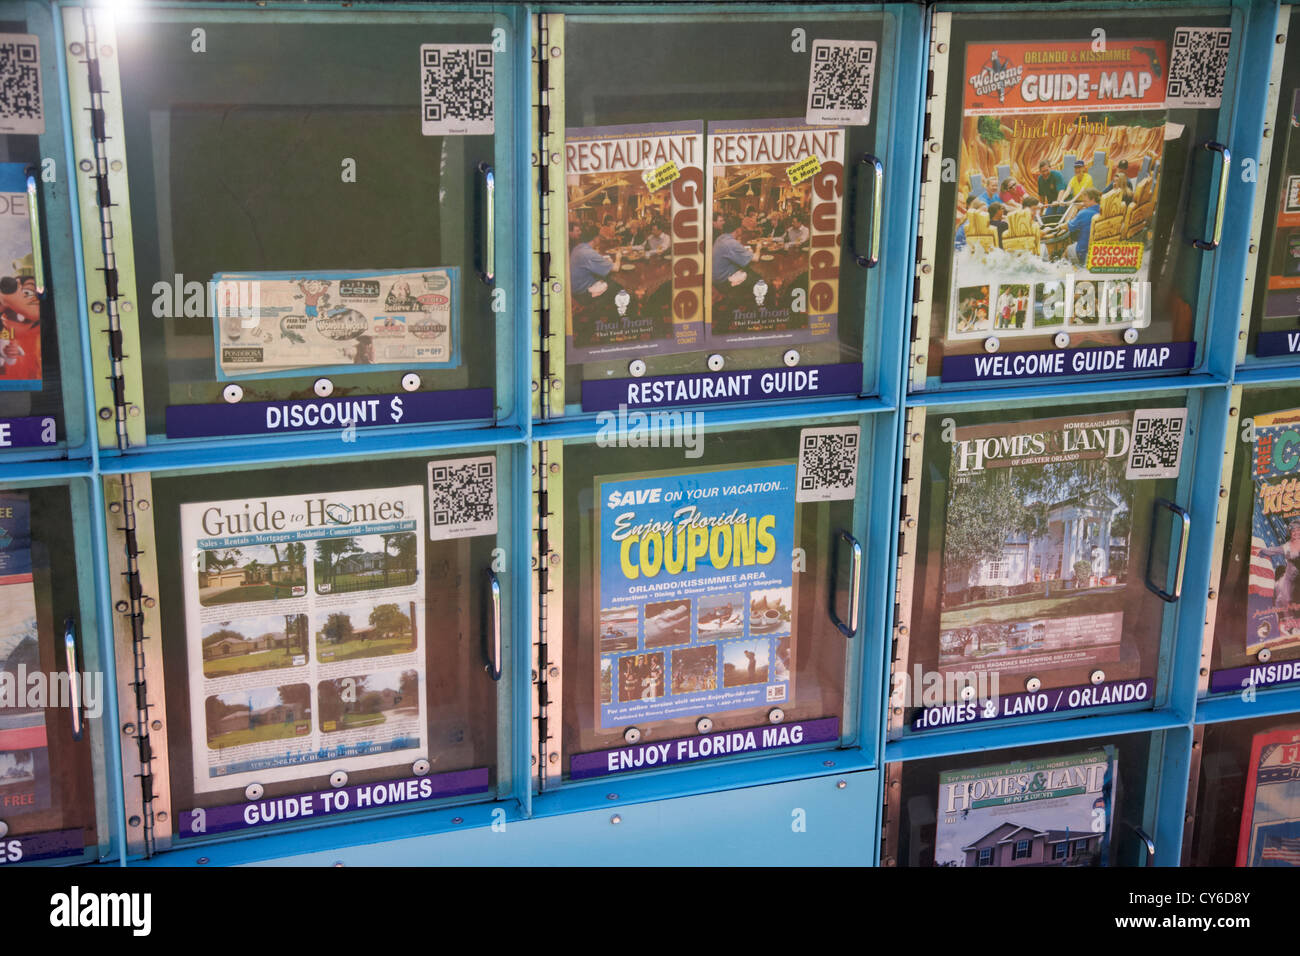 florida discount coupon books guides maps guide dispensers kissimmee florida usa - Stock Image